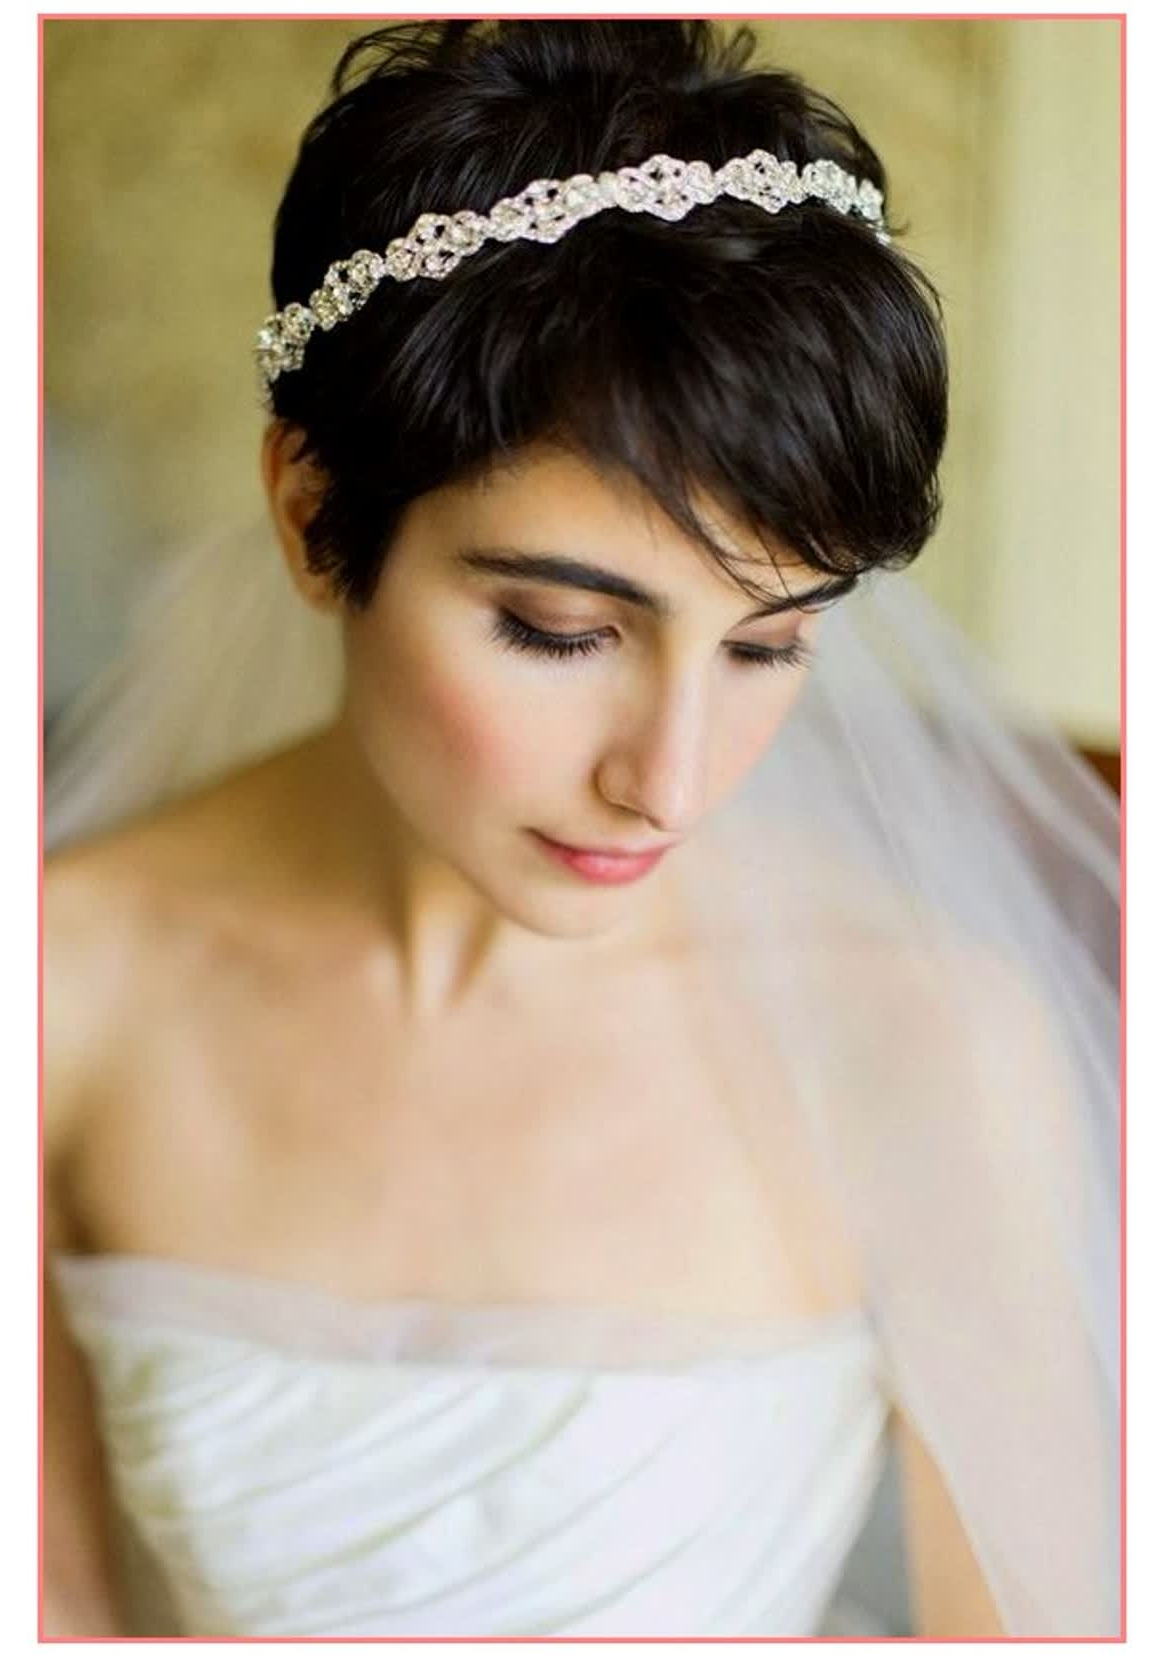 Bridal Hairstyles For Short Hair With Veil – The Newest Hairstyles Throughout Most Recent Bridal Hairstyles For Short Length Hair With Veil (View 15 of 15)